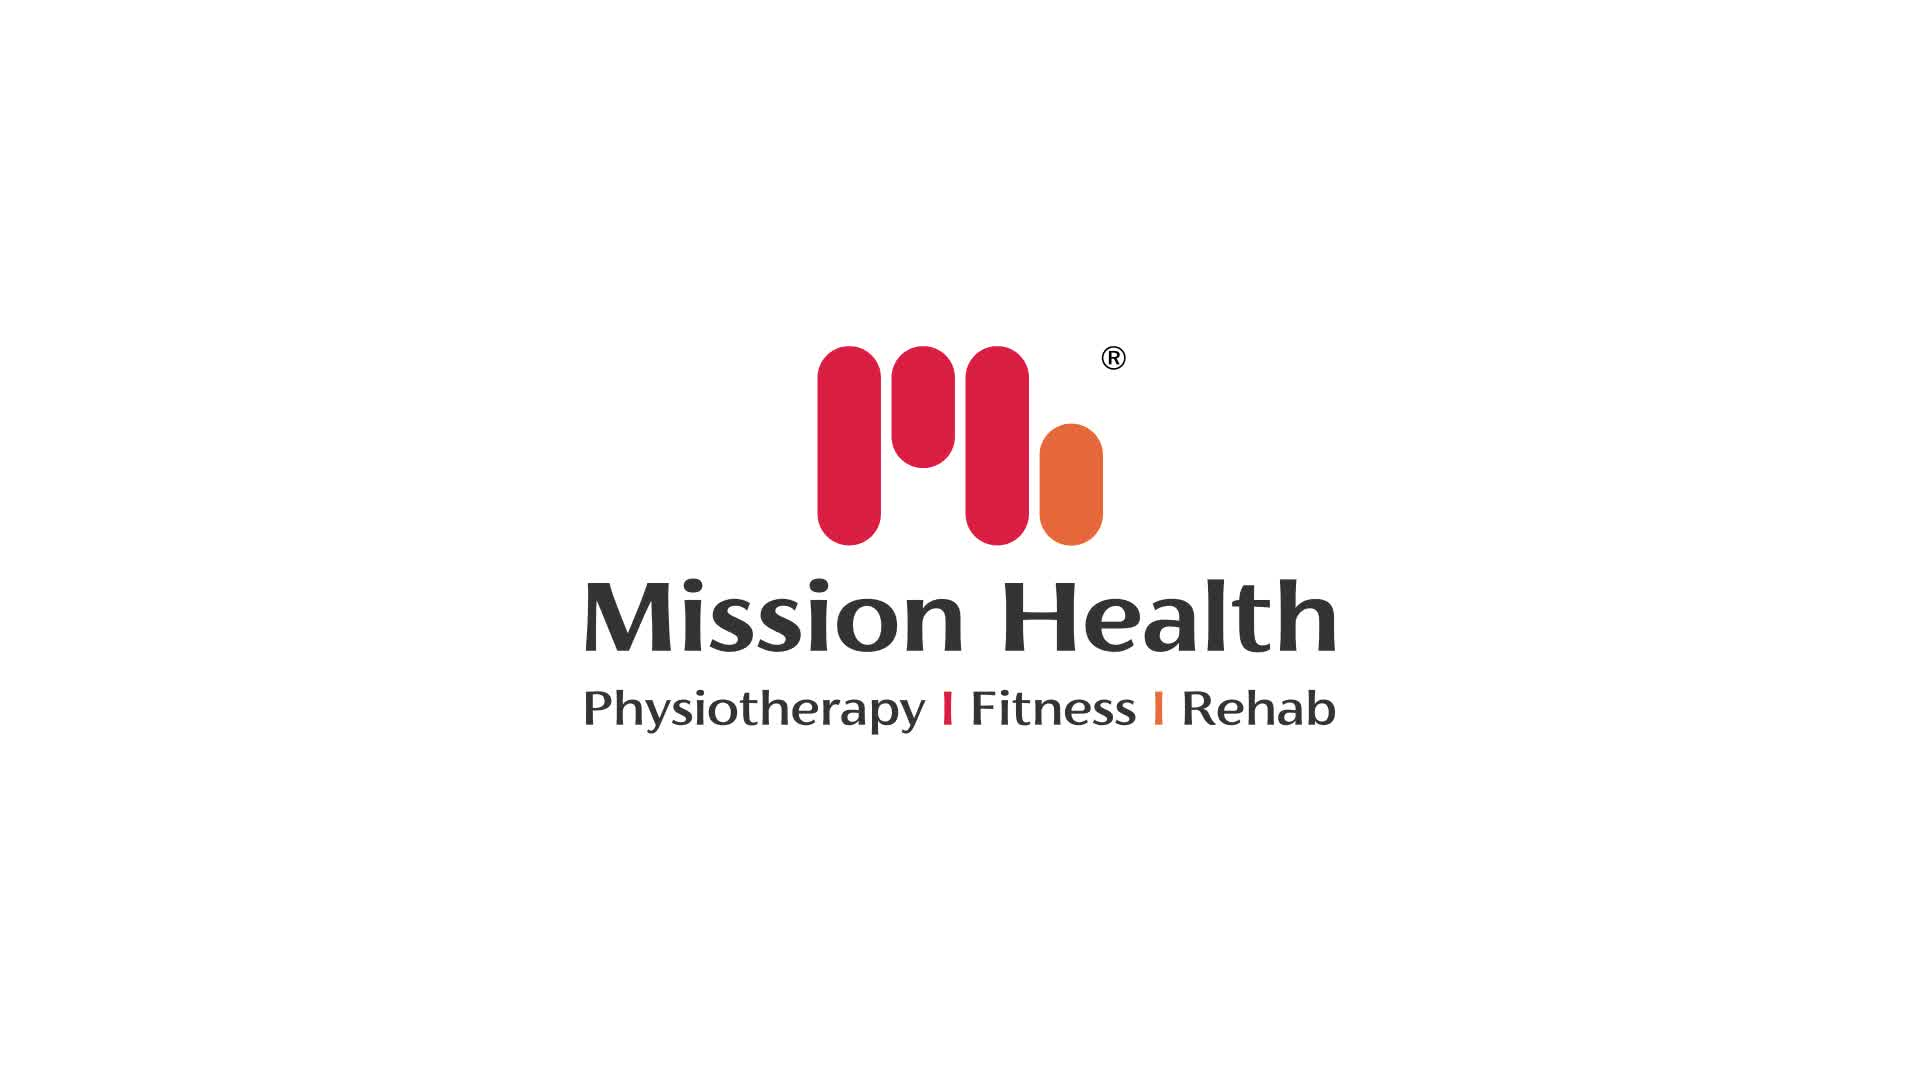 It's time to Restart!  Yes, get back to your workout sessions and re-build a Healthy & Fit Lifestyle that keeps you moving ahead.  Mission Health - Ahmedabad's finest fitness boutique is all set to welcome you again from 5th August, under the expert supervision of our Sports & Fitness Physiotherapists. Be rest assured about sanitation and safety.  Call: +916356463564 Visit: www.missionhealth.co.in  #RestartRoutine #exercise #exercises #fitnessexperts #fitnessexpert #fitnessteam #gymoholic #fitness #MissionHealth #MissionHealthIndia #MovementIsLife